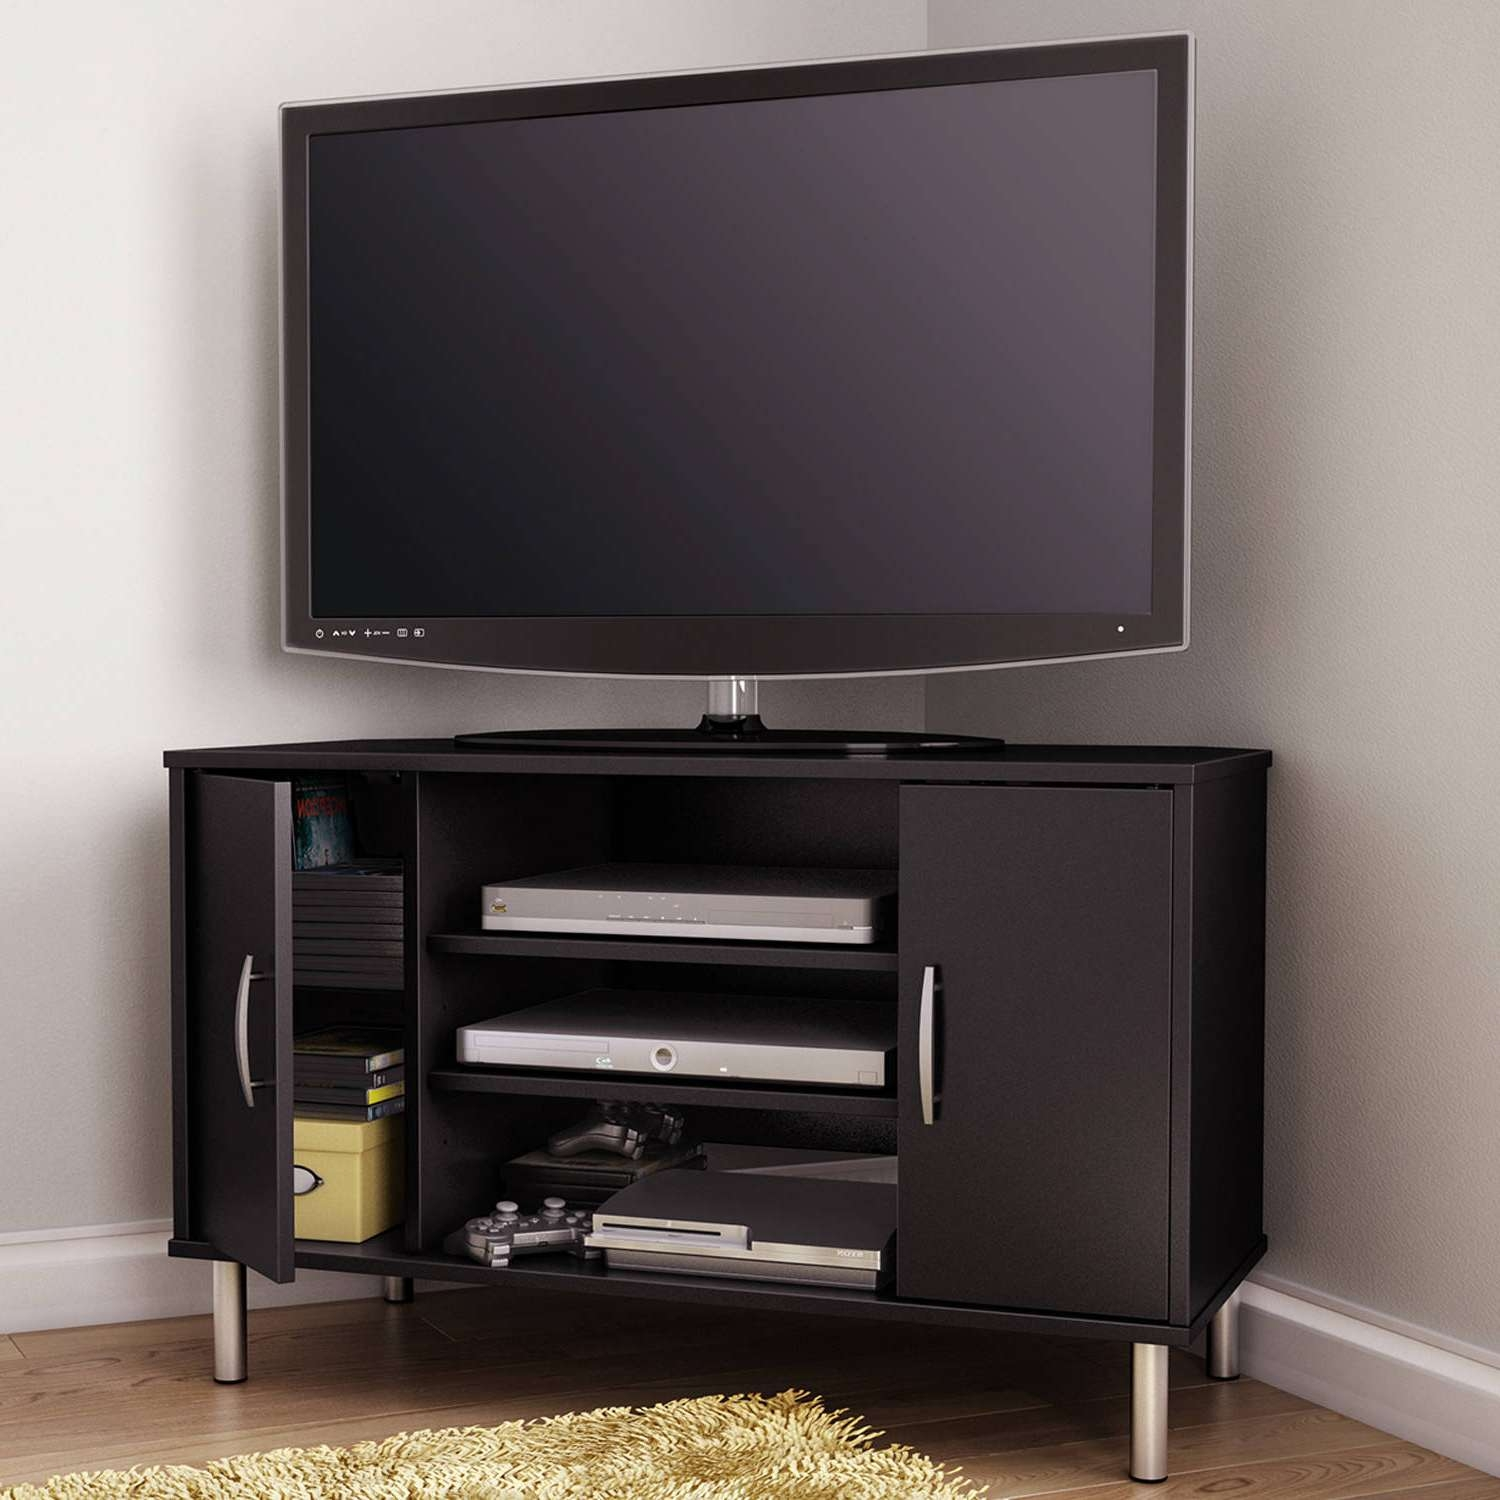 Tv Stand : 43 Literarywondrous Corner Tv Stand For 50 Inch Flat Throughout 50 Inch Corner Tv Cabinets (View 5 of 20)